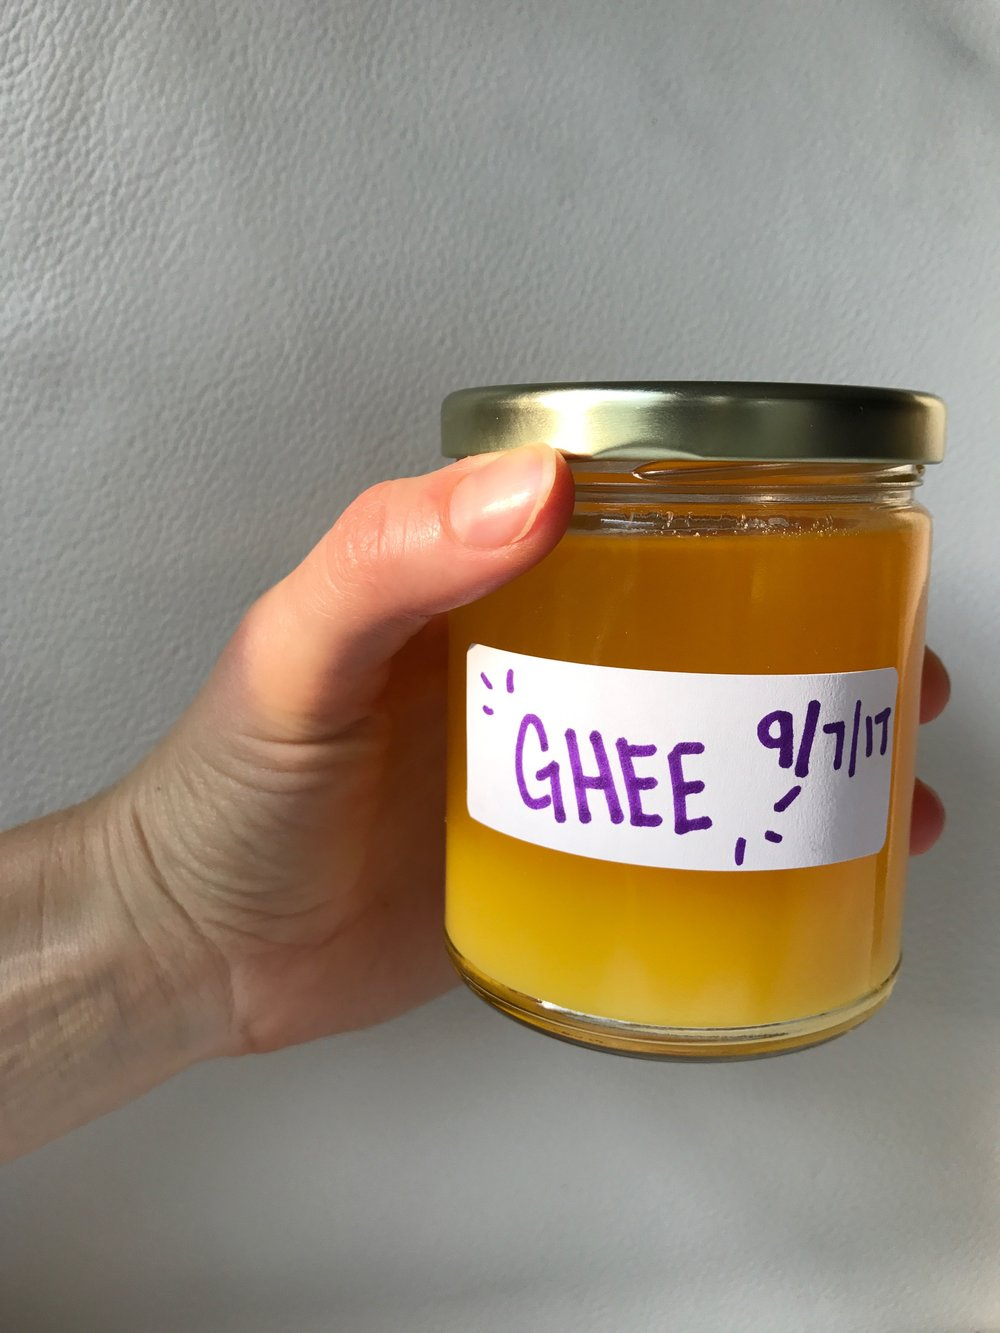 5 Reasons to Use Ghee